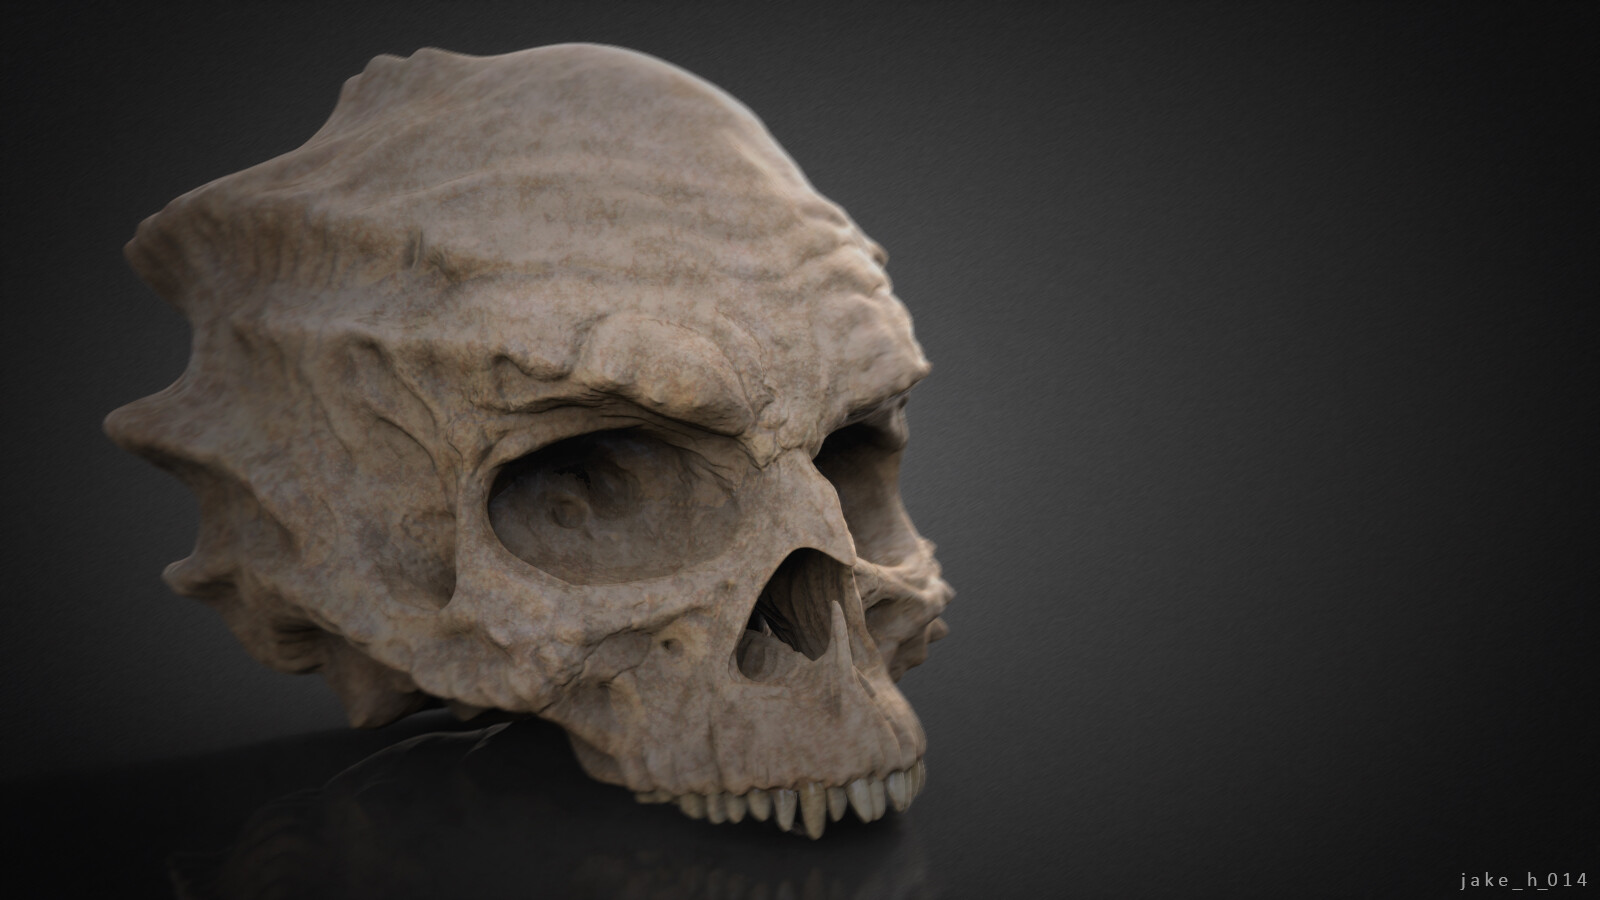 Demon skull - sculpt.